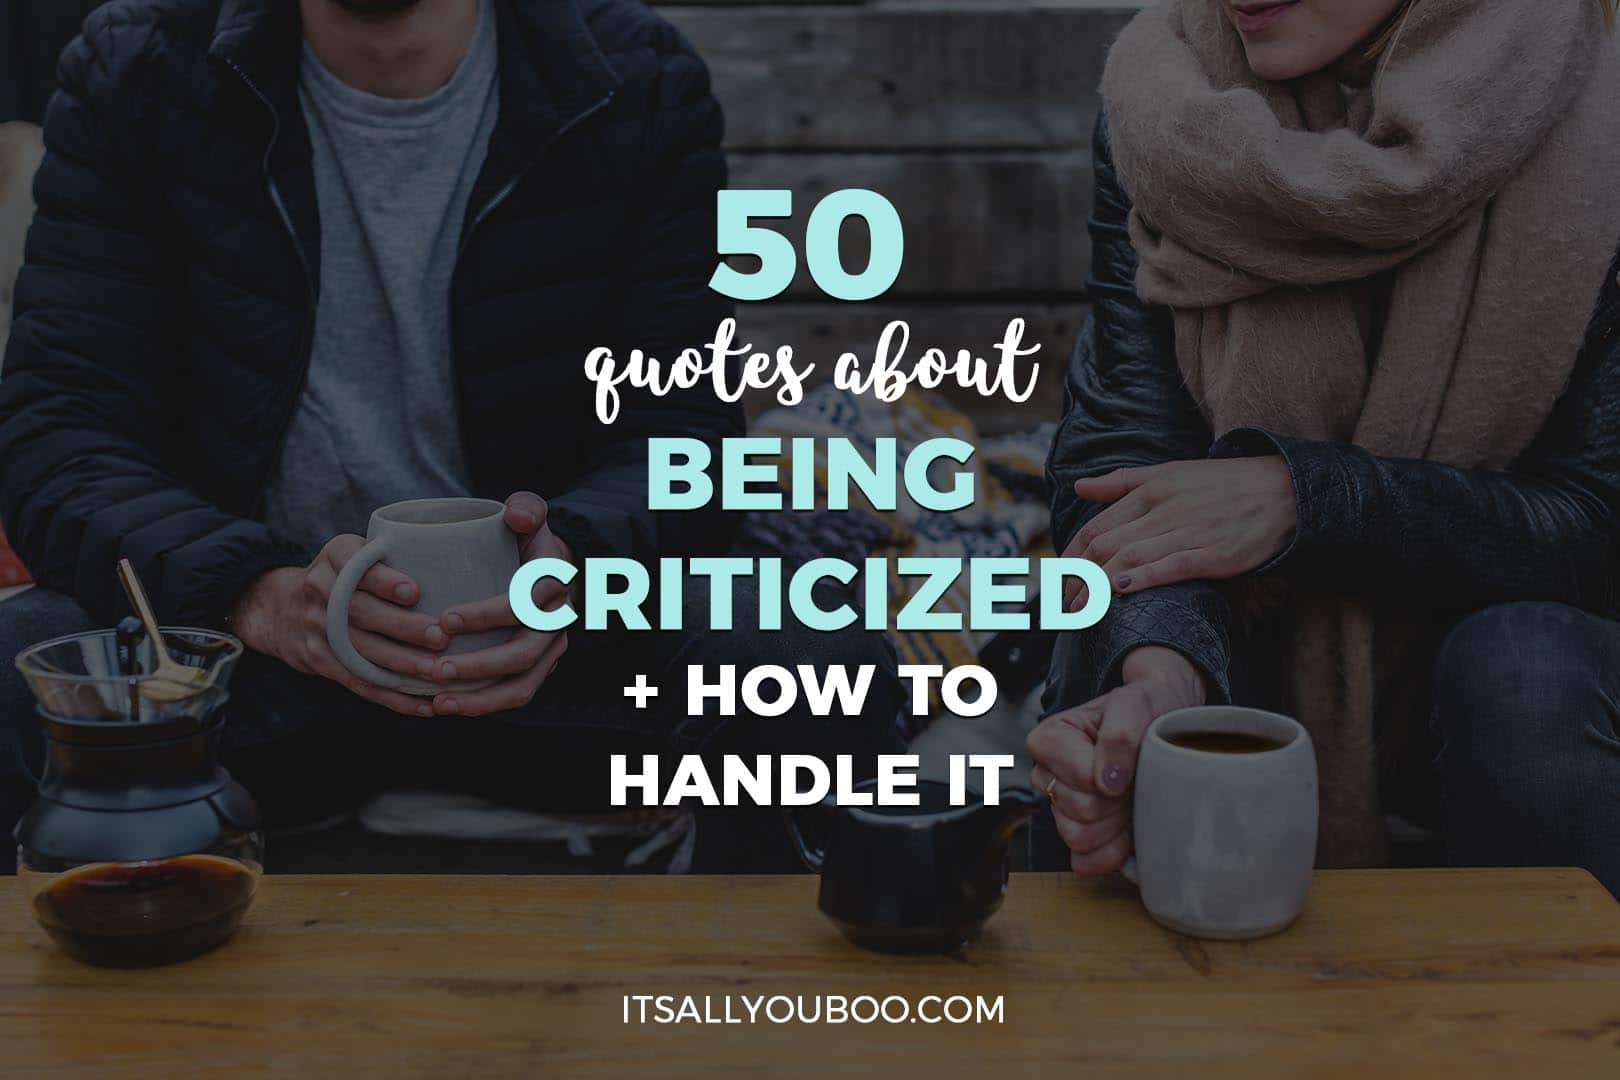 50 Quotes about Being Criticized and How to Handle It